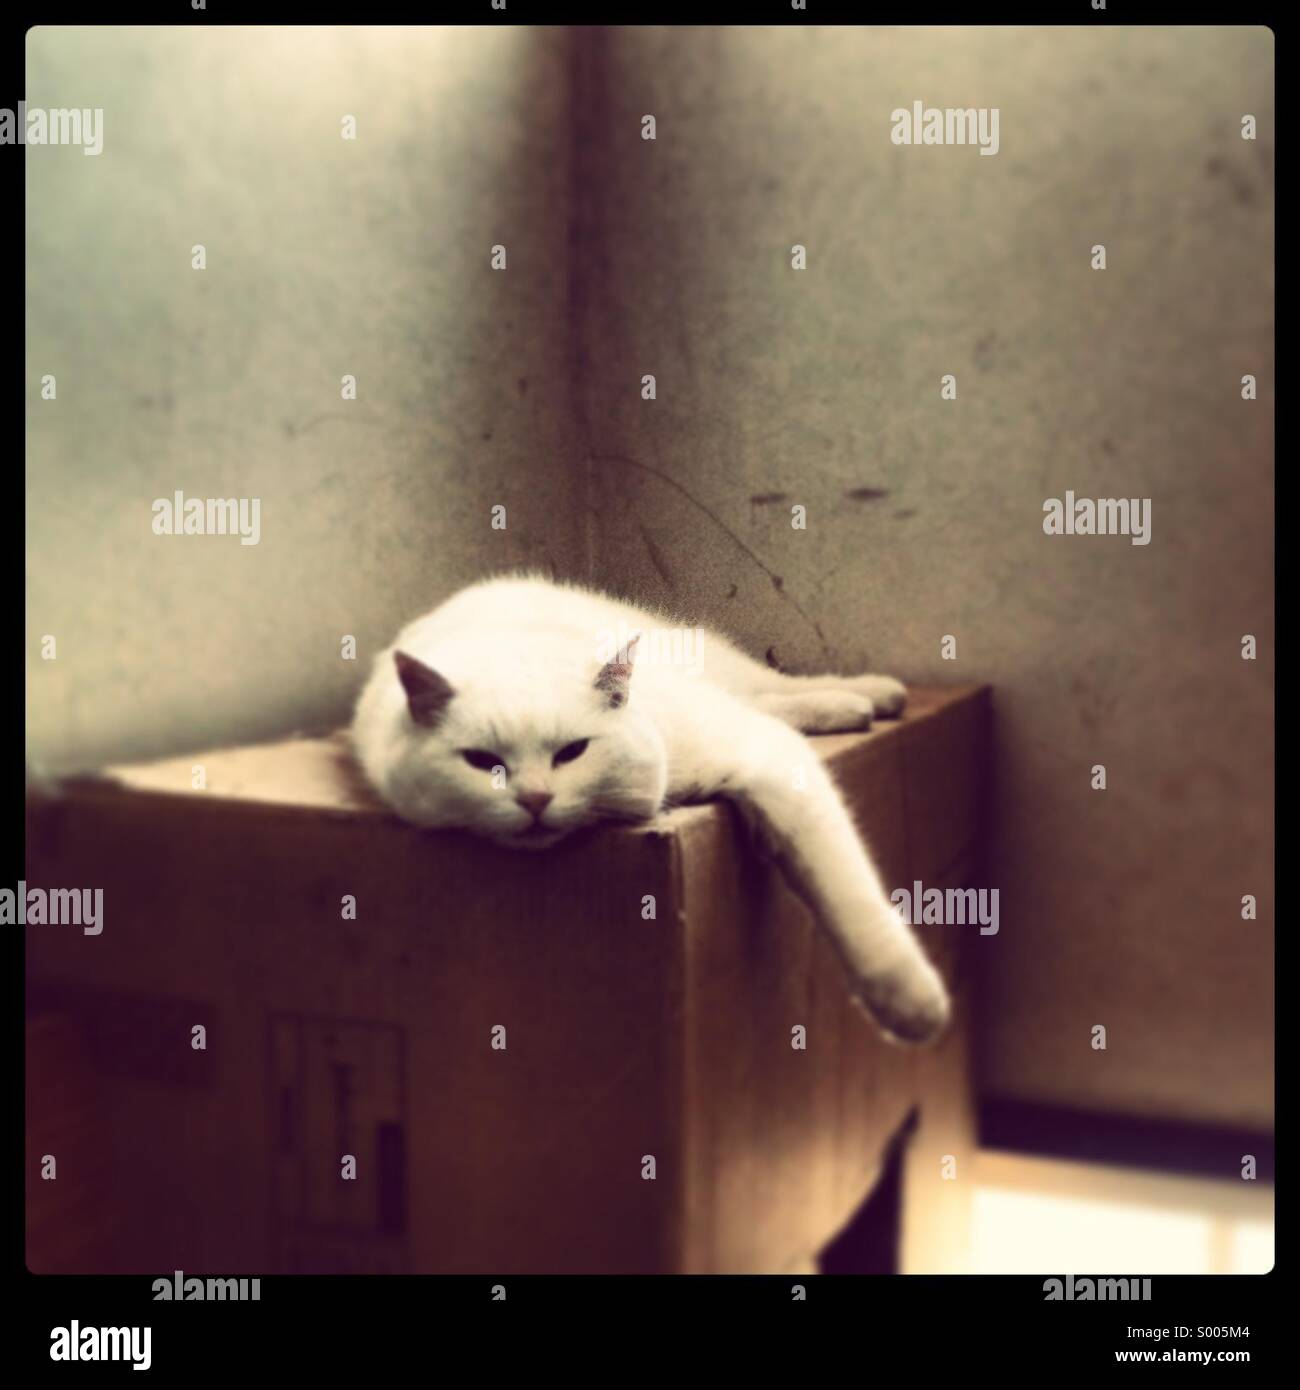 White cat sitting on cardboard box in tenement landing - Stock Image